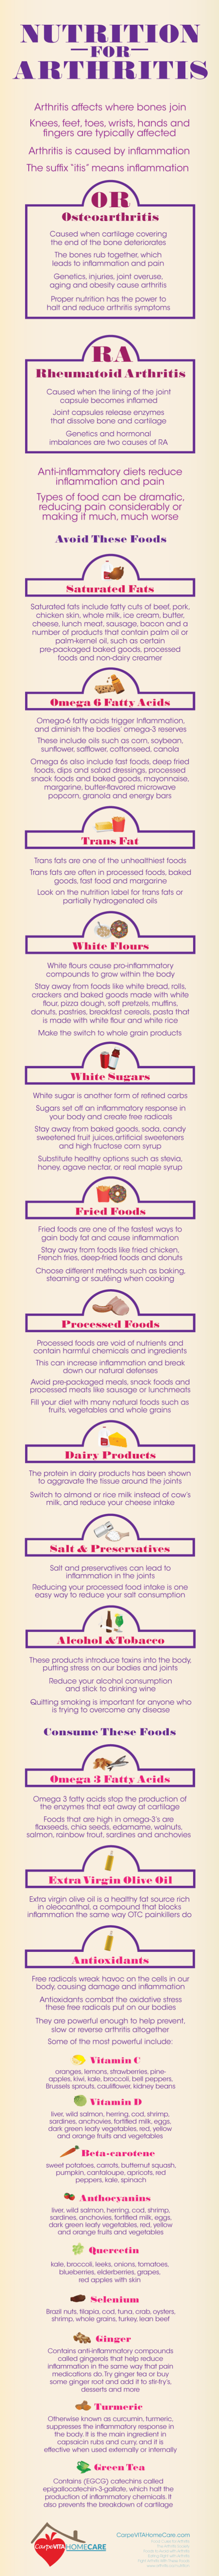 Nutrition for Arthritis Infographic